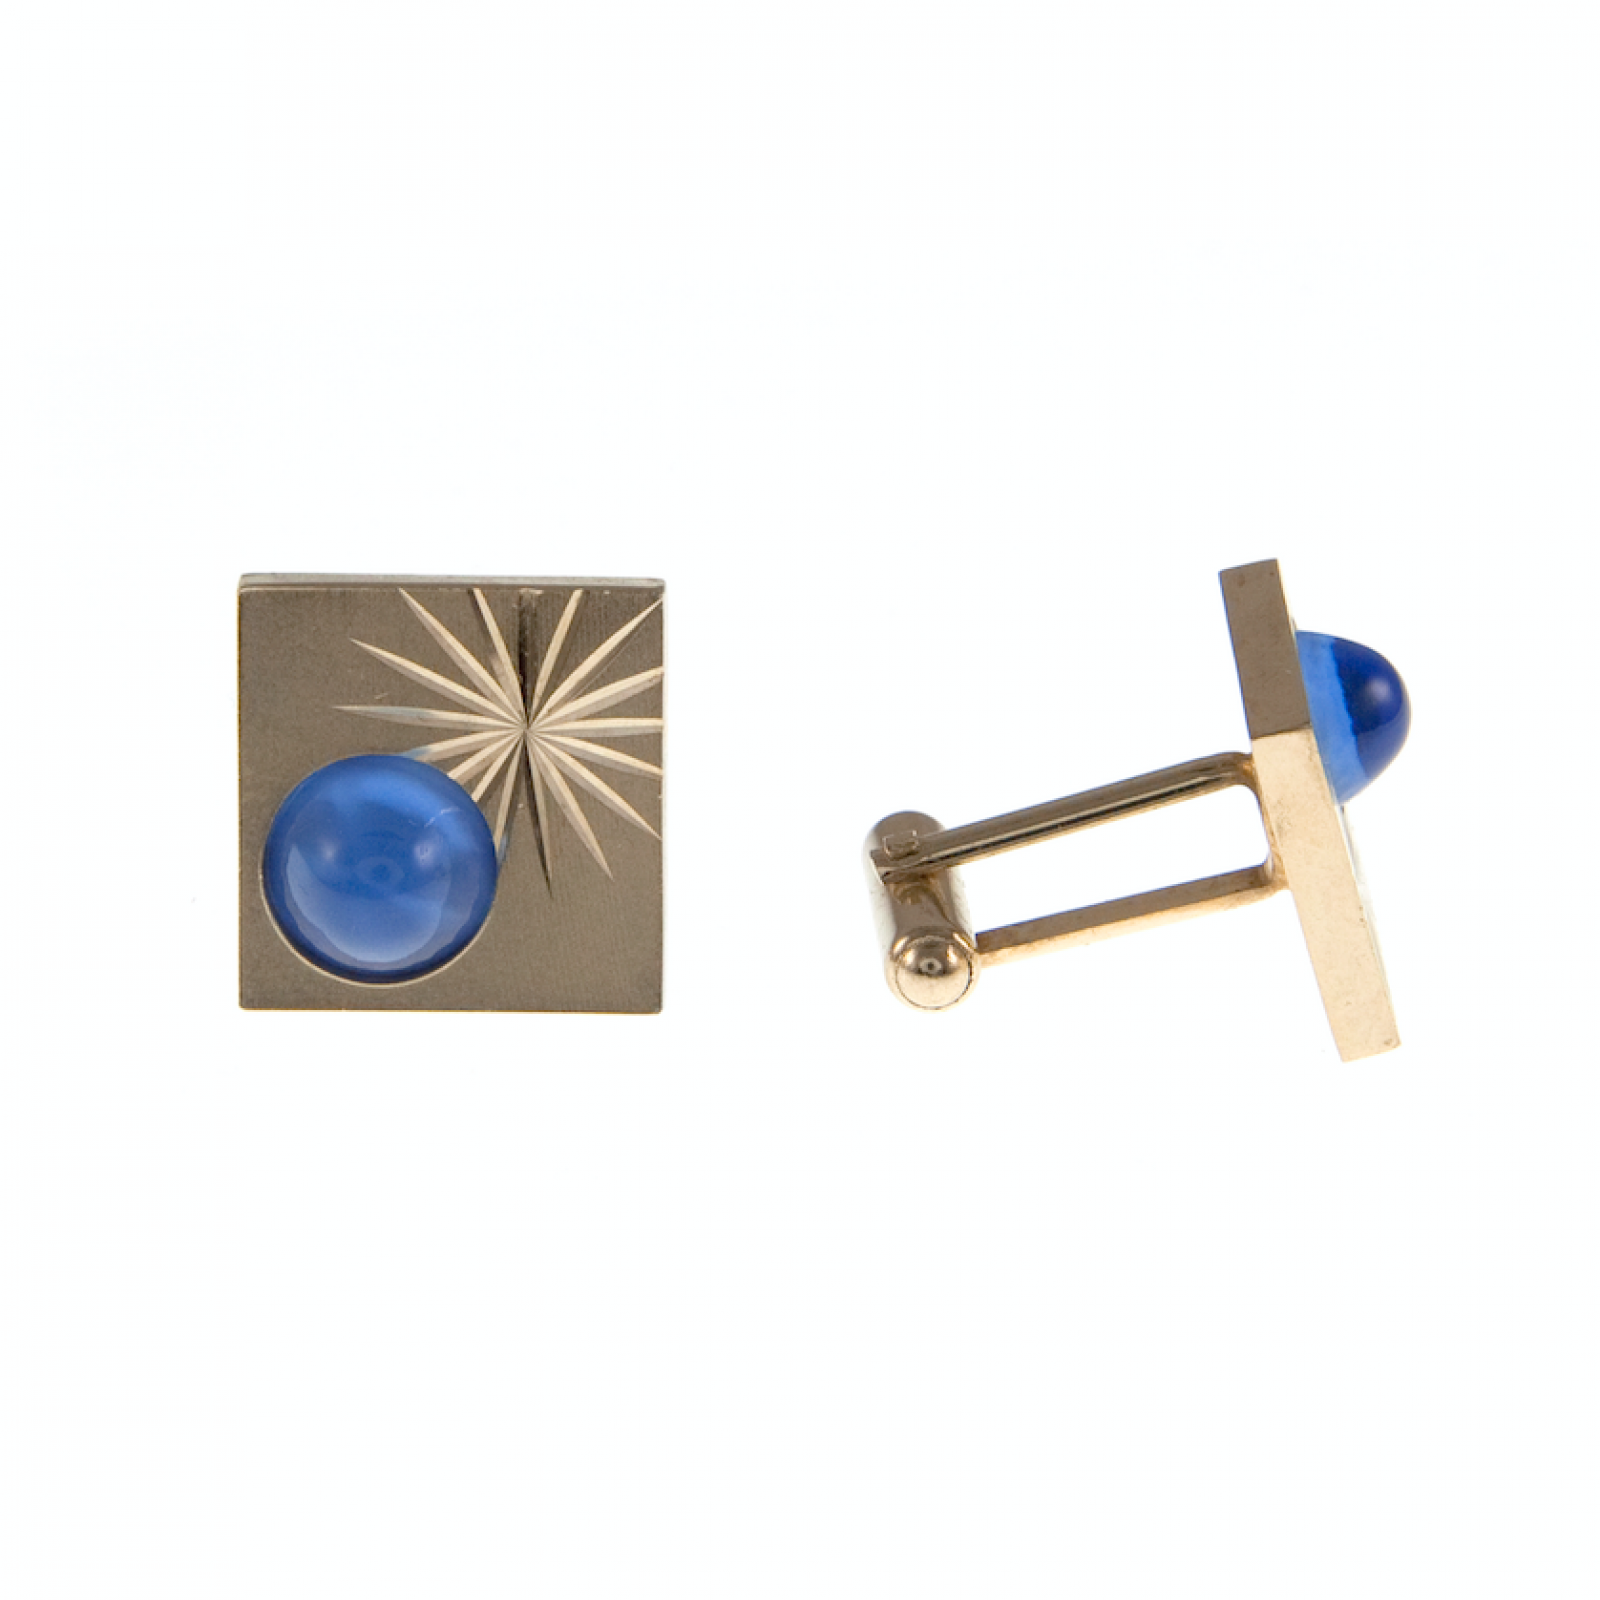 Vintage 1950s Square Gold Plated Cufflinks With Blue Stone thumbnails